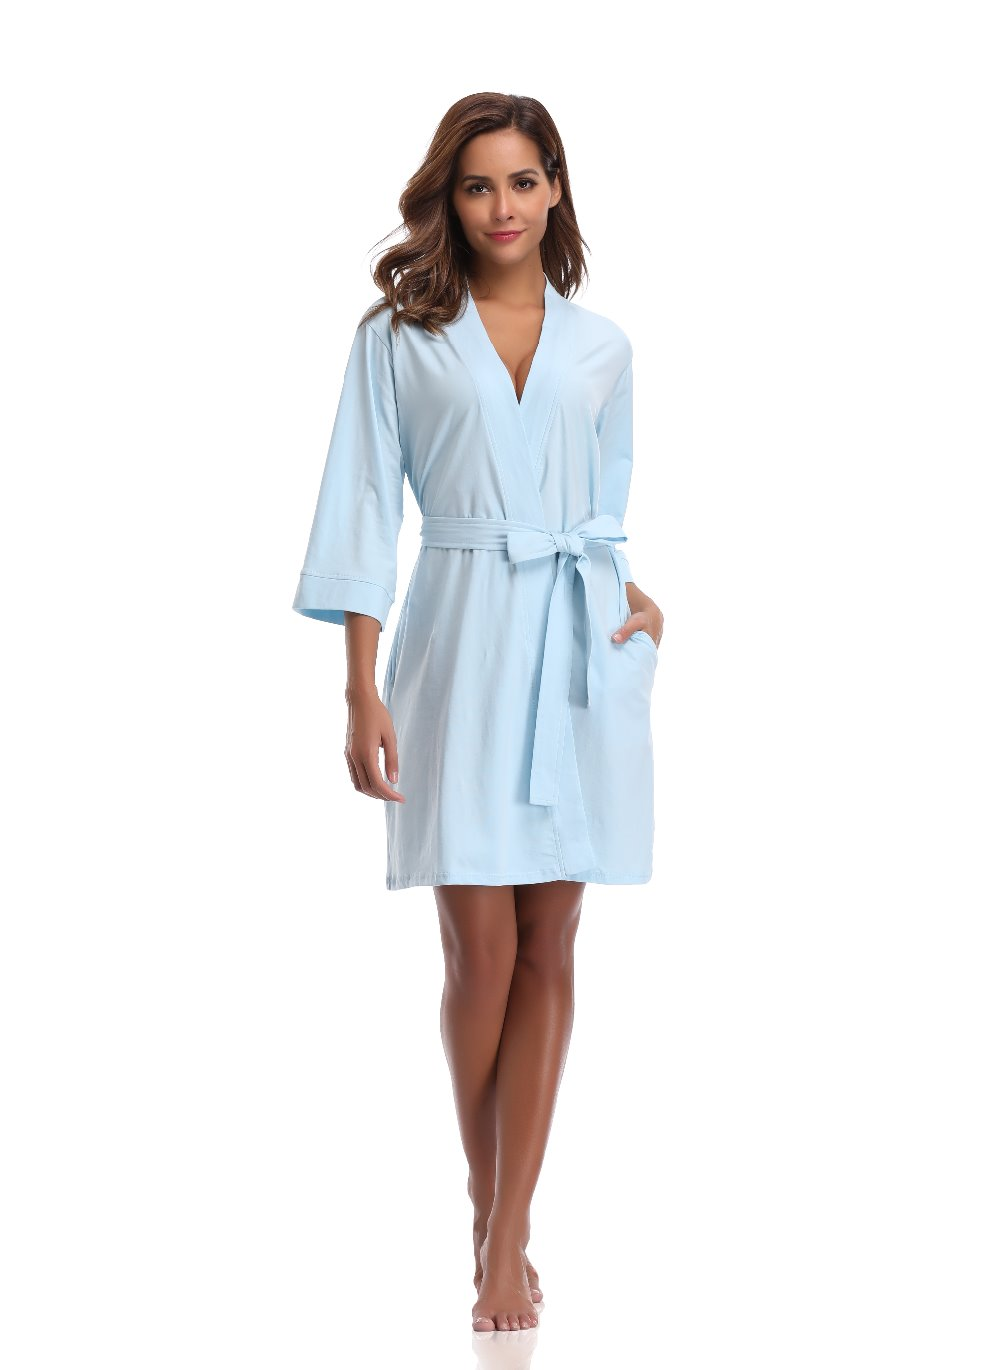 Hot Sale Cotton Bridesmaid Robes Dressing Gowns For Women Knit Bath